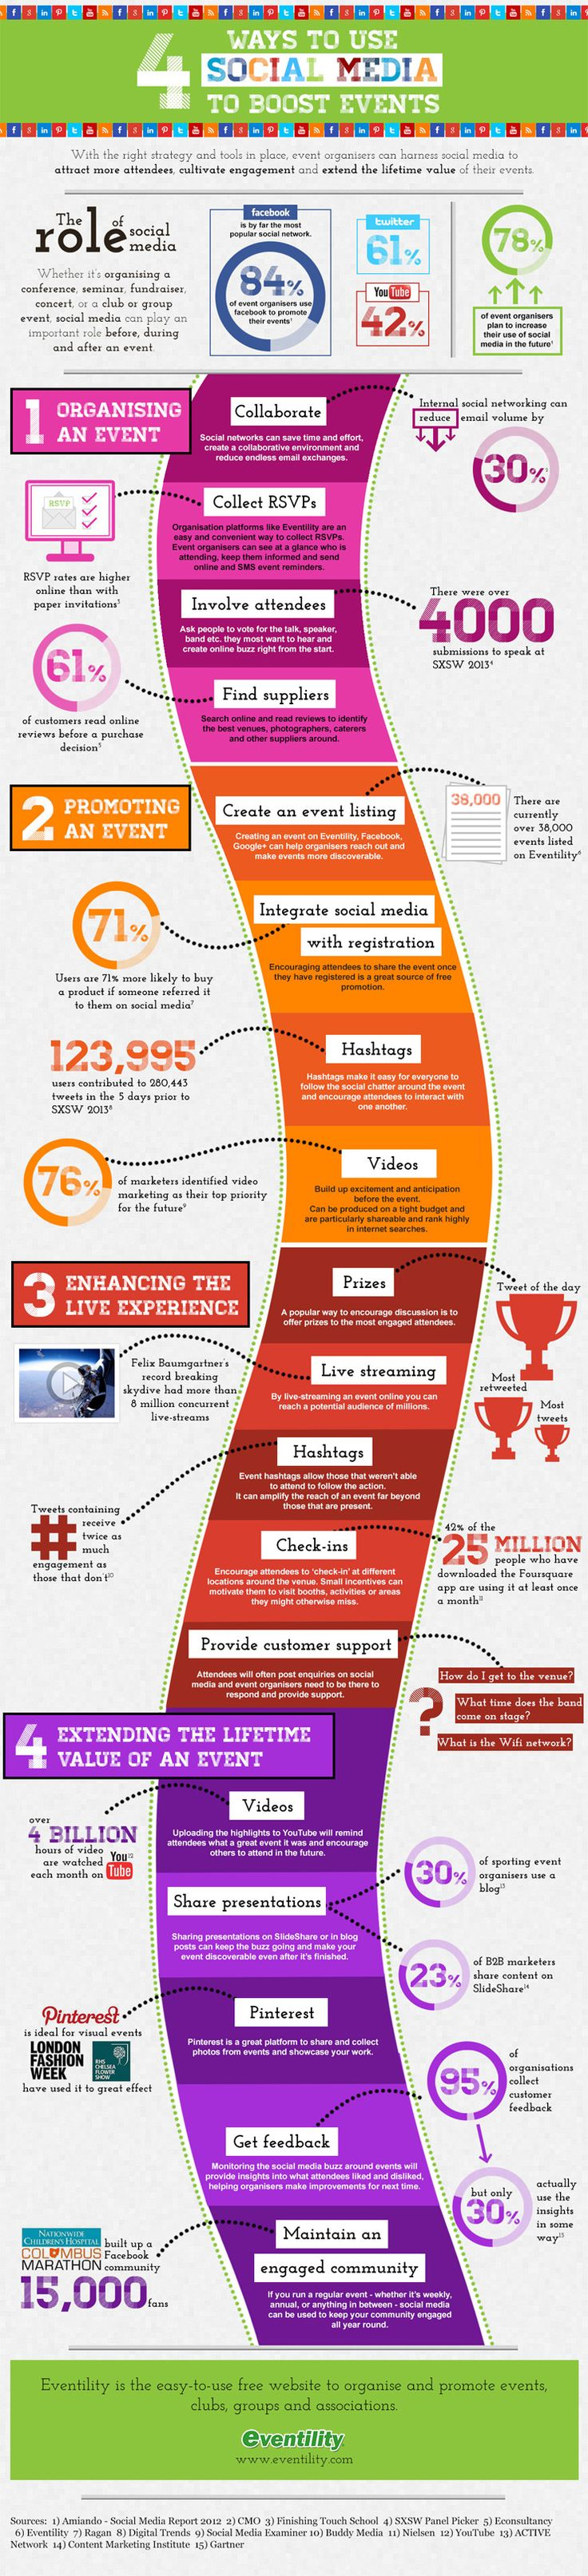 4 Easy Ways to Use Social Media to Boost Events  Infographic